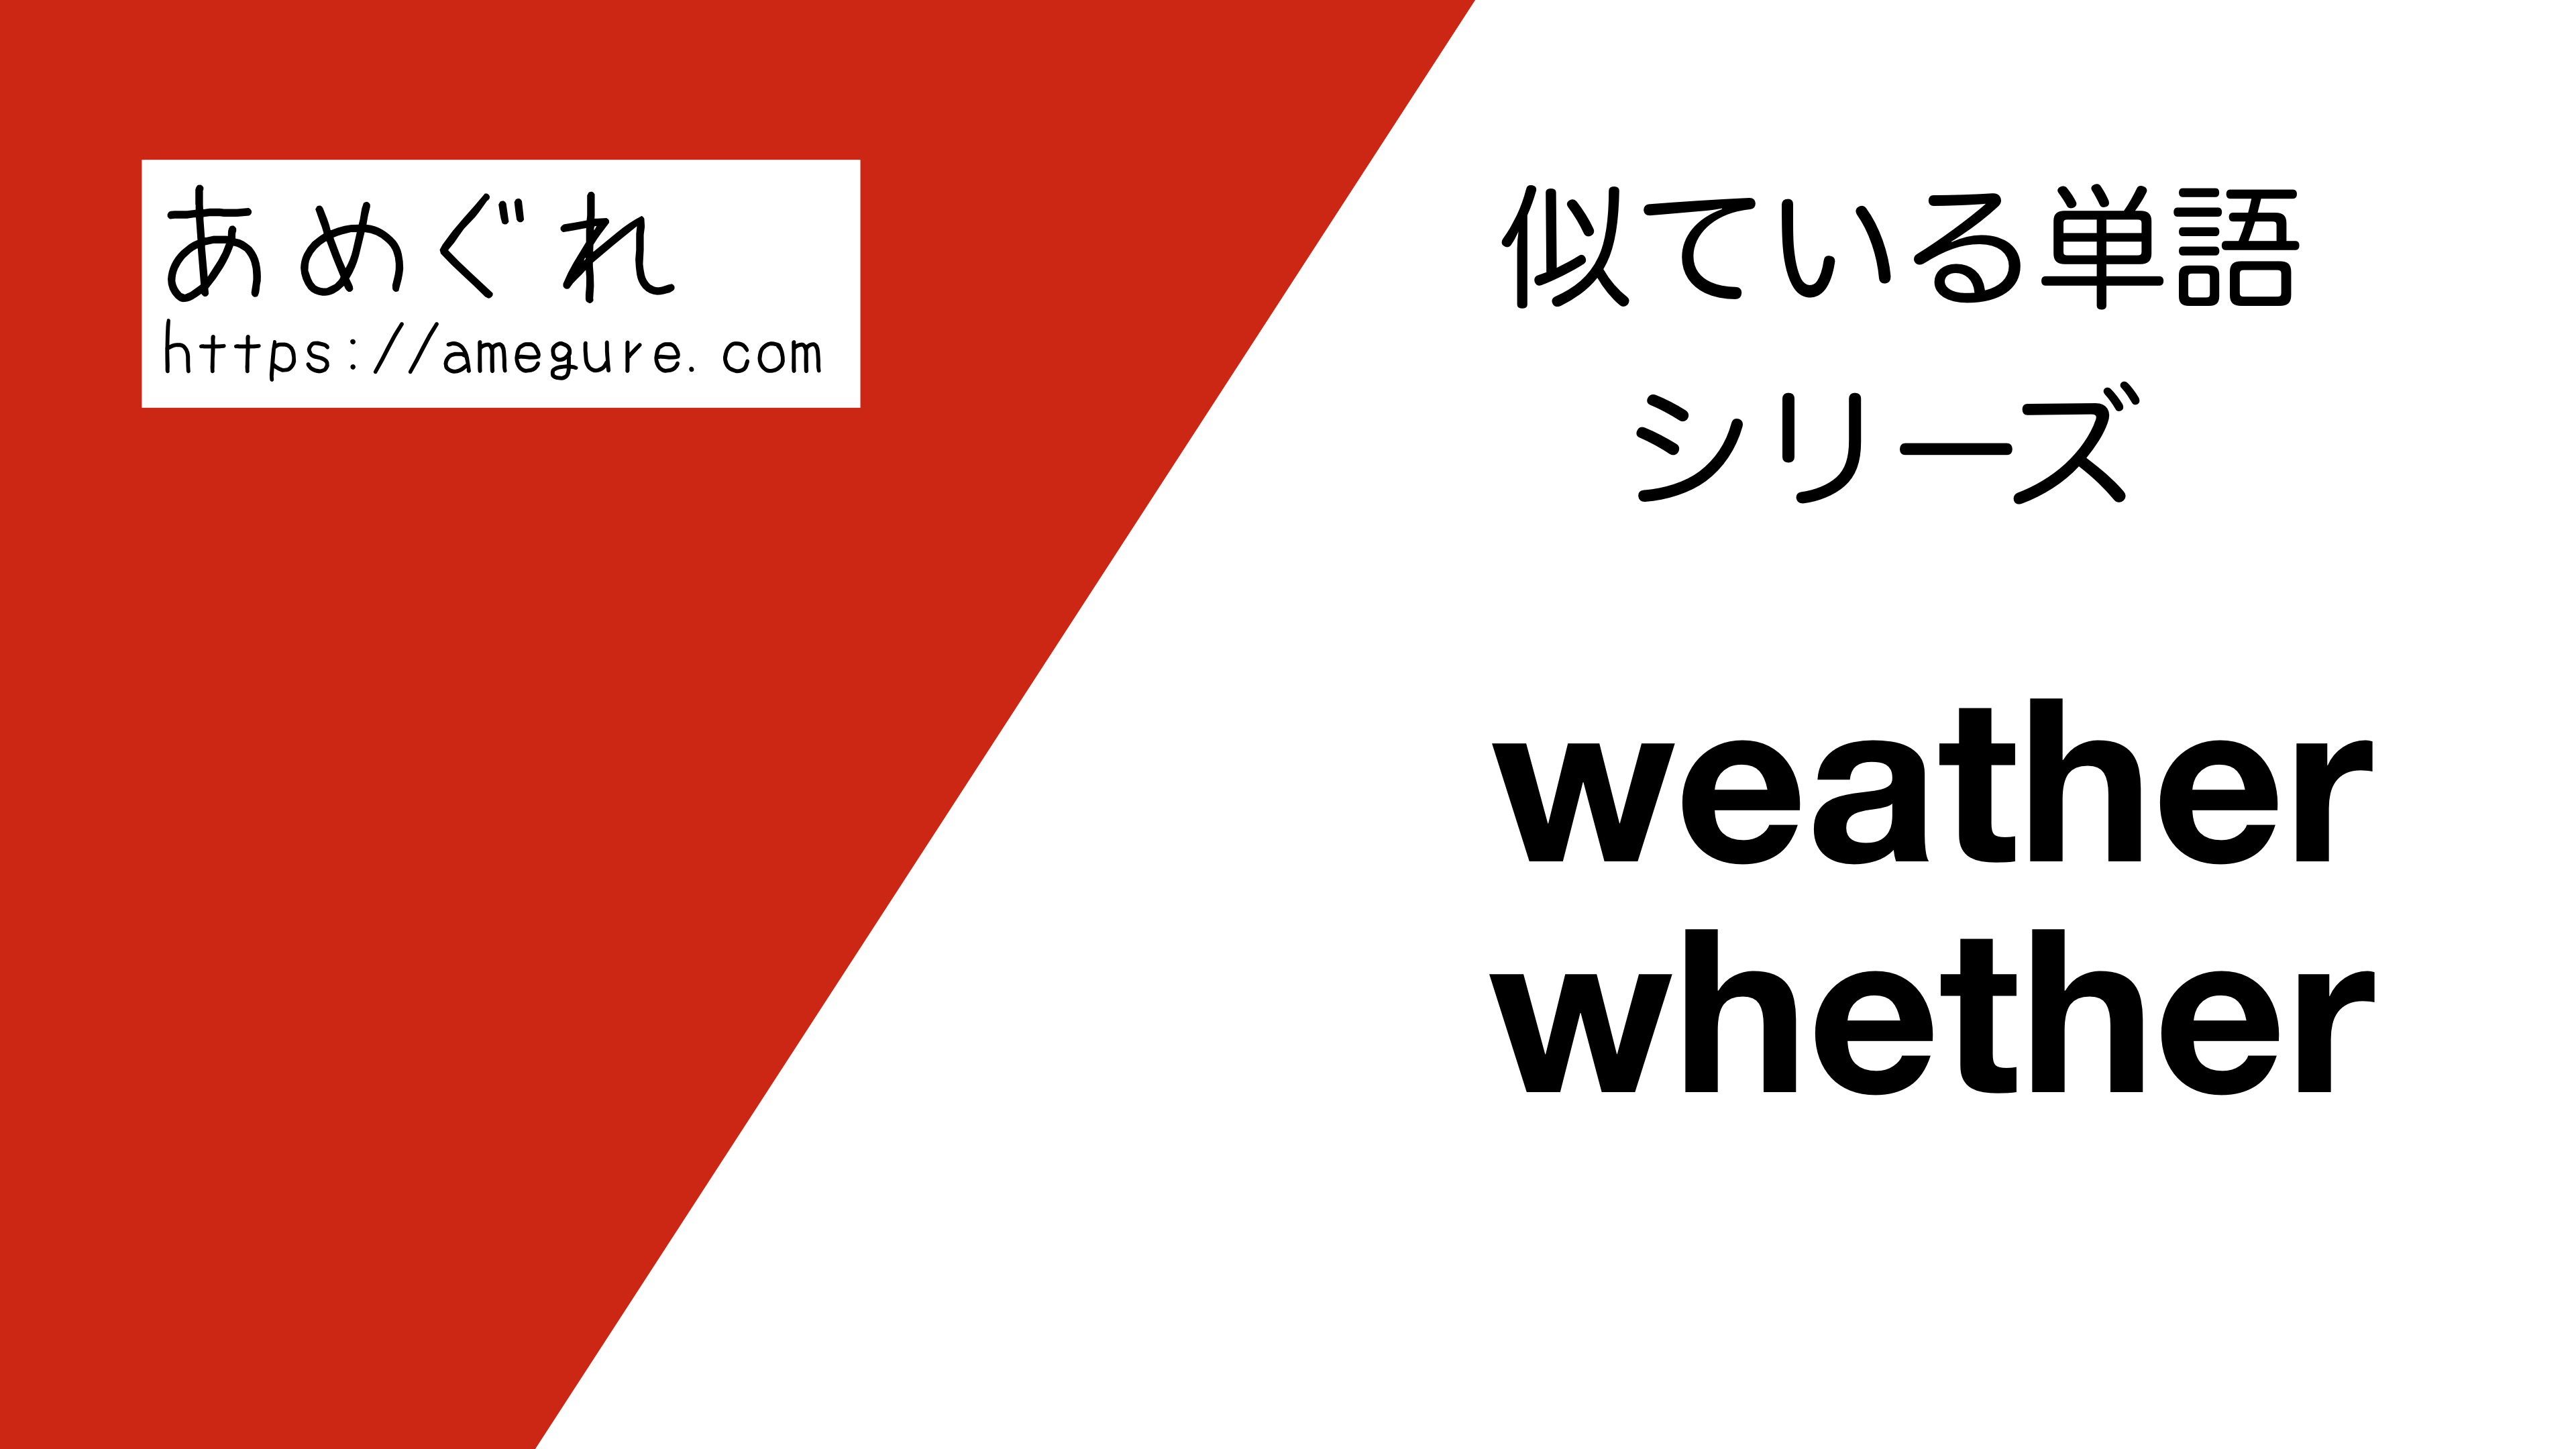 weather-whether違い